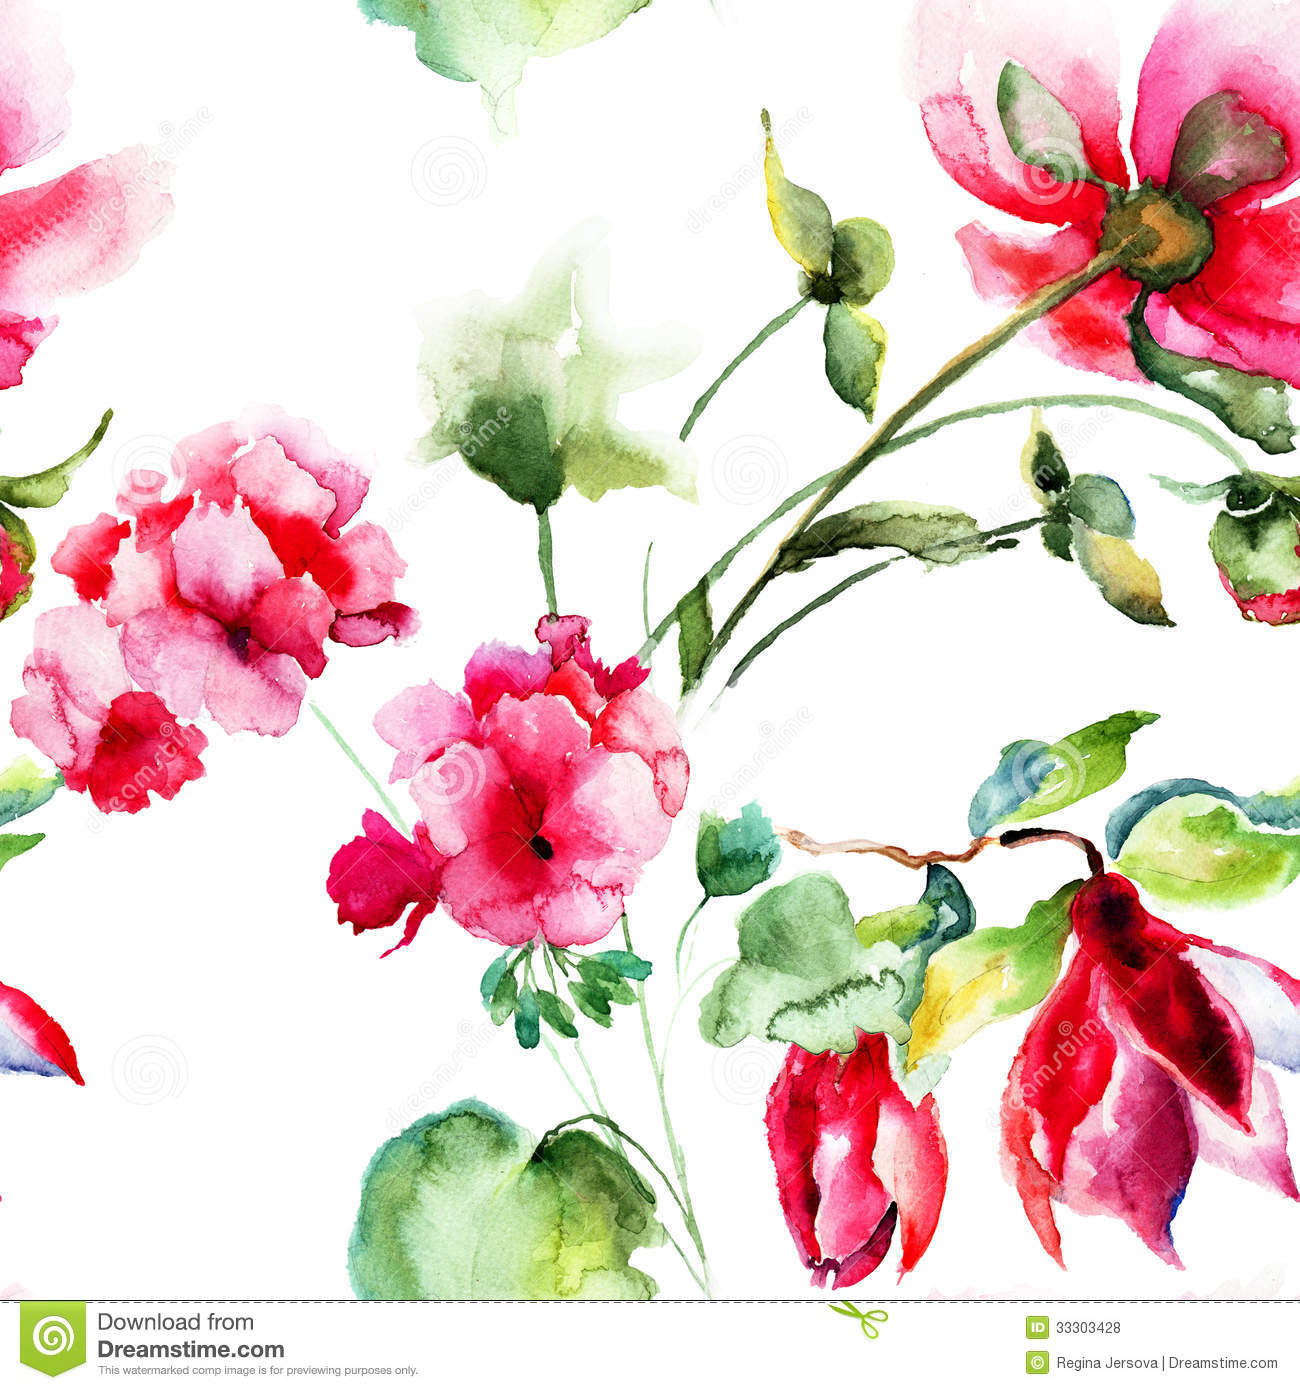 Free Download Geranium Flower Drawing Geranium And Peony Flowers 1300x1390 For Your Desktop Mobile Tablet Explore 41 Watercolor Peony Wallpaper Peony Wallpaper Unusual Wallpapers For The Home Unusual Wallpaper For Walls